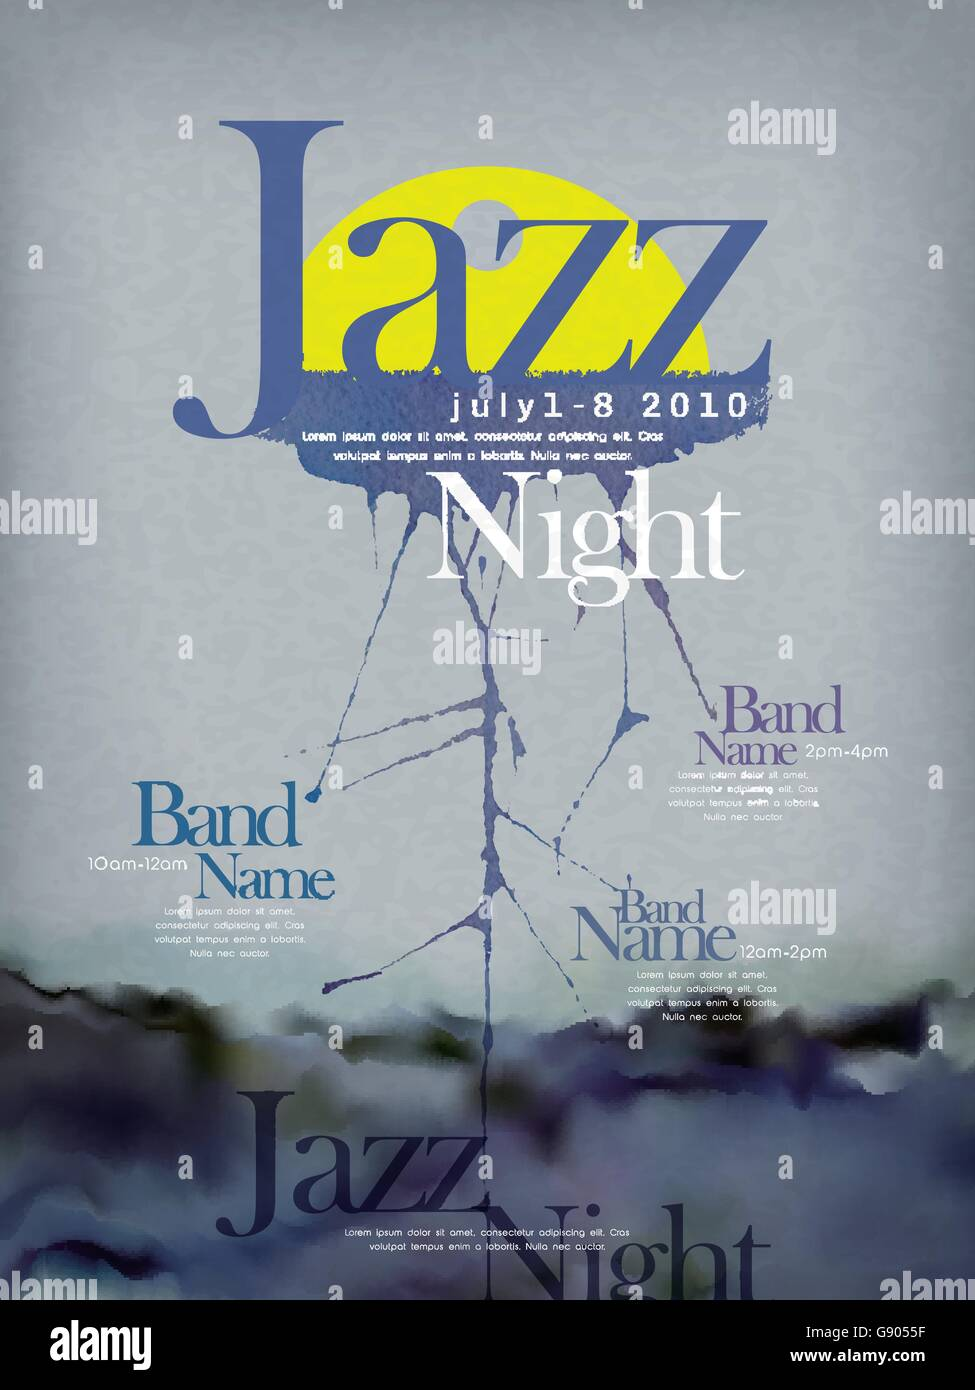 jazz festival poster template design with ink stroke - Stock Vector